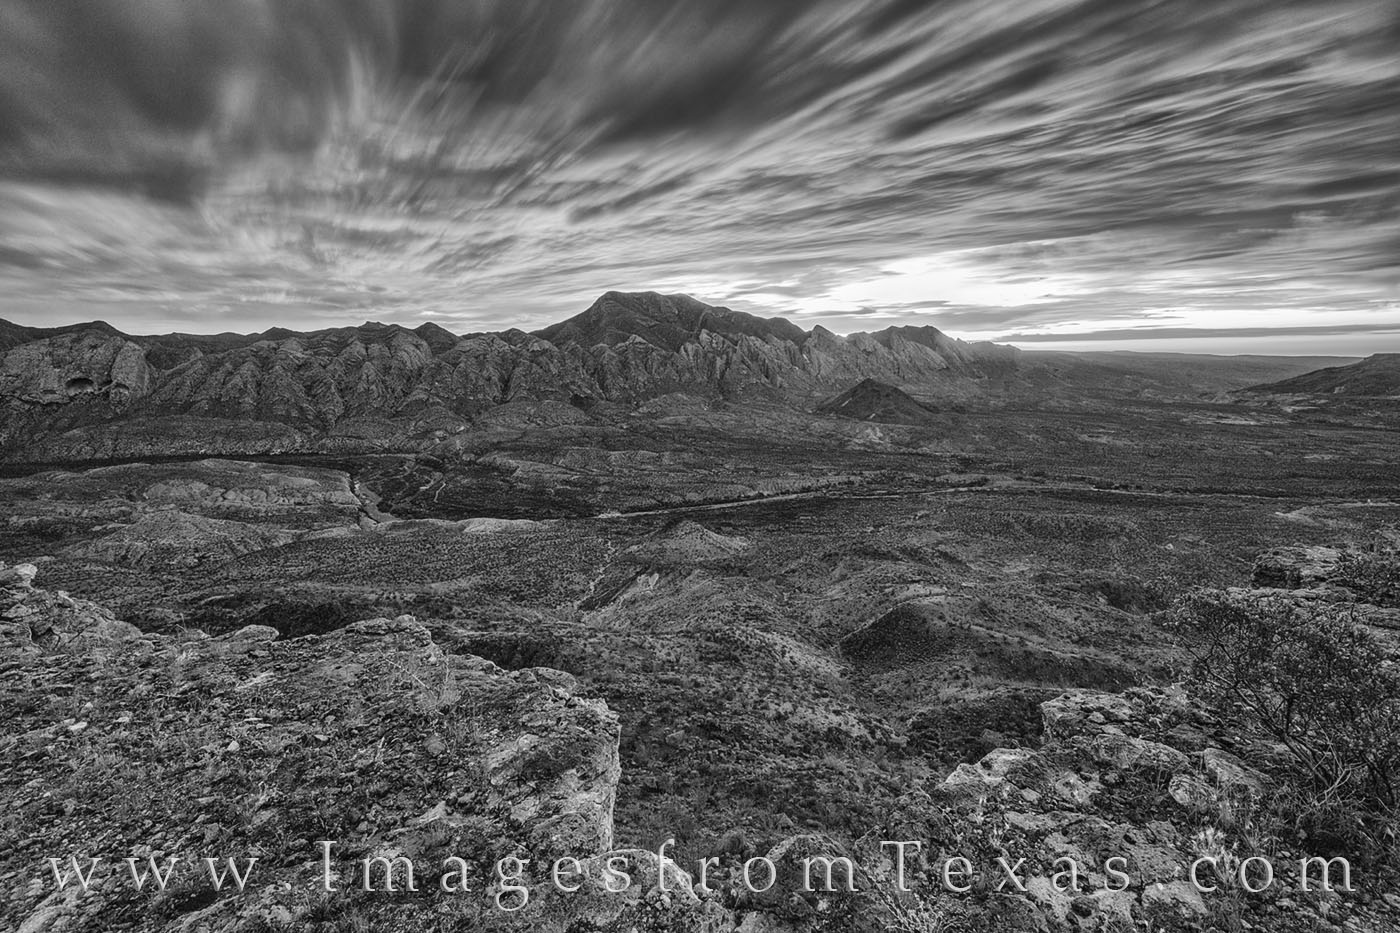 solitario, fresno canyon, big bend ranch, west texas, hiking, exploring, big bend, desert, sunrise, clouds, black and white, photo